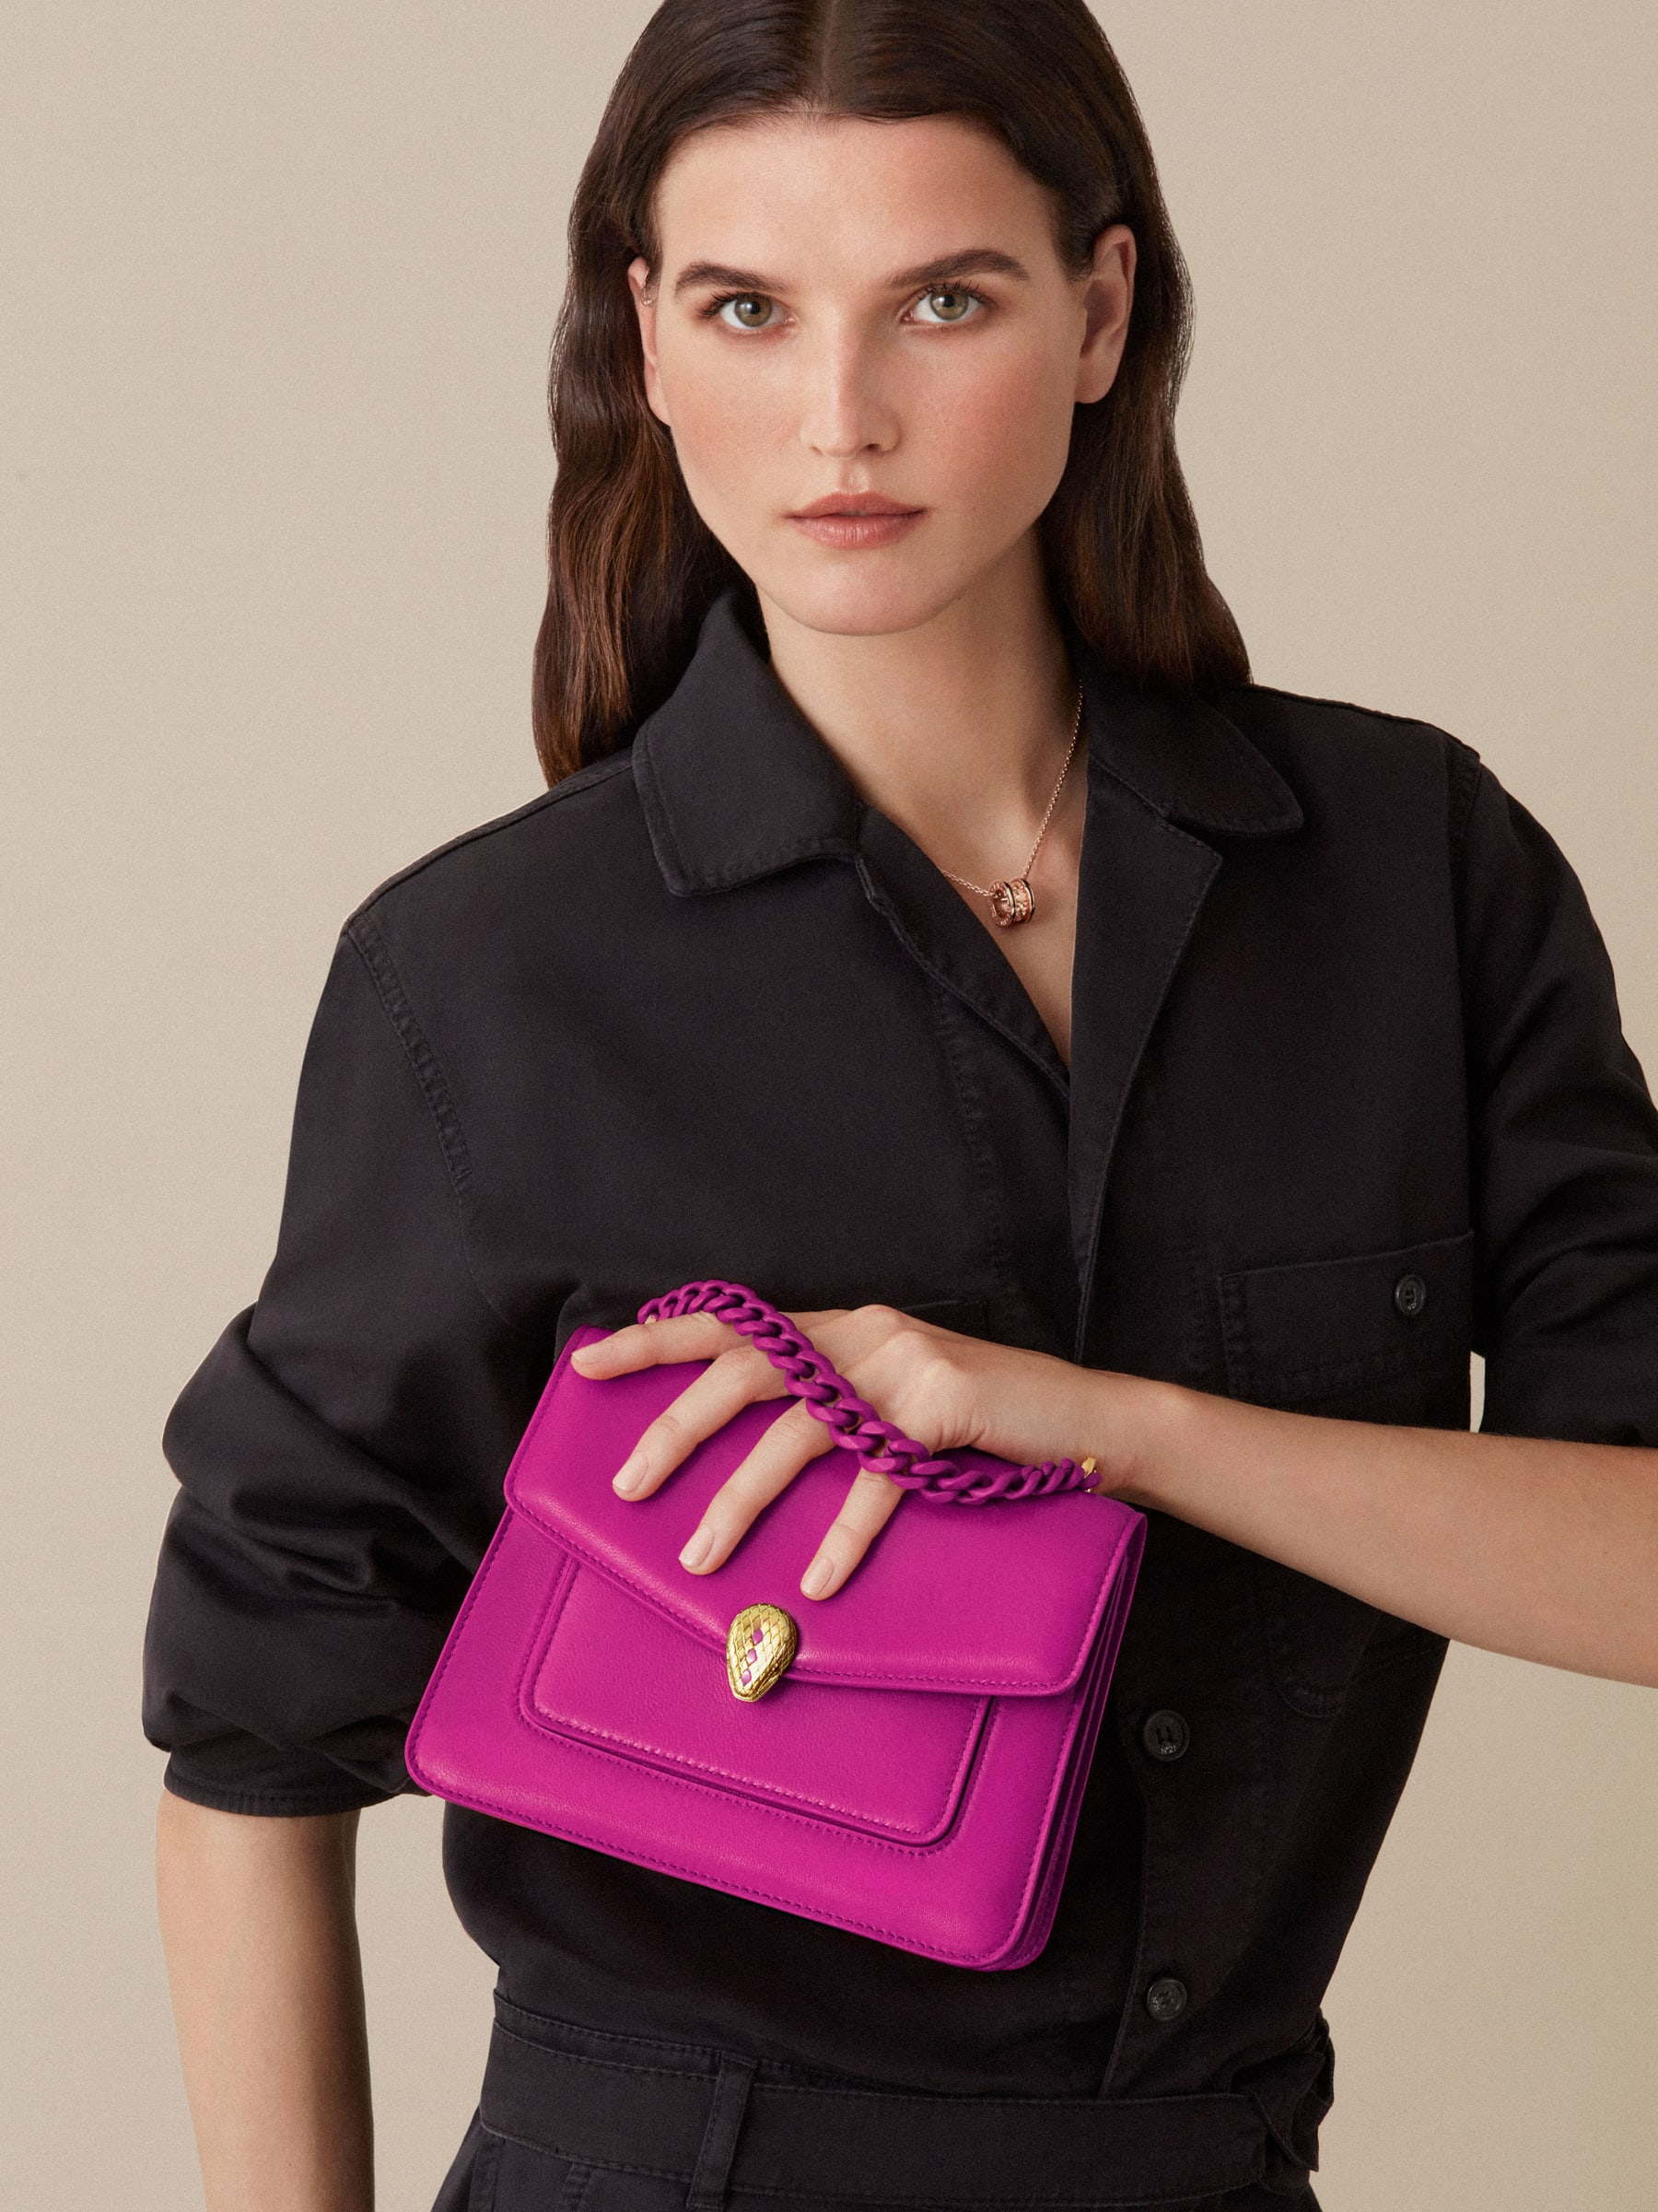 """Serpenti Forever"" small maxi chain crossbody bag in Magenta Spinel purple nappa leather, with Roman Garnet bordeaux nappa leather internal lining. New Serpenti head closure in gold plated brass, finished with small purple rhodonite scales in the middle and red enamel eyes. 1134-MCN image 6"